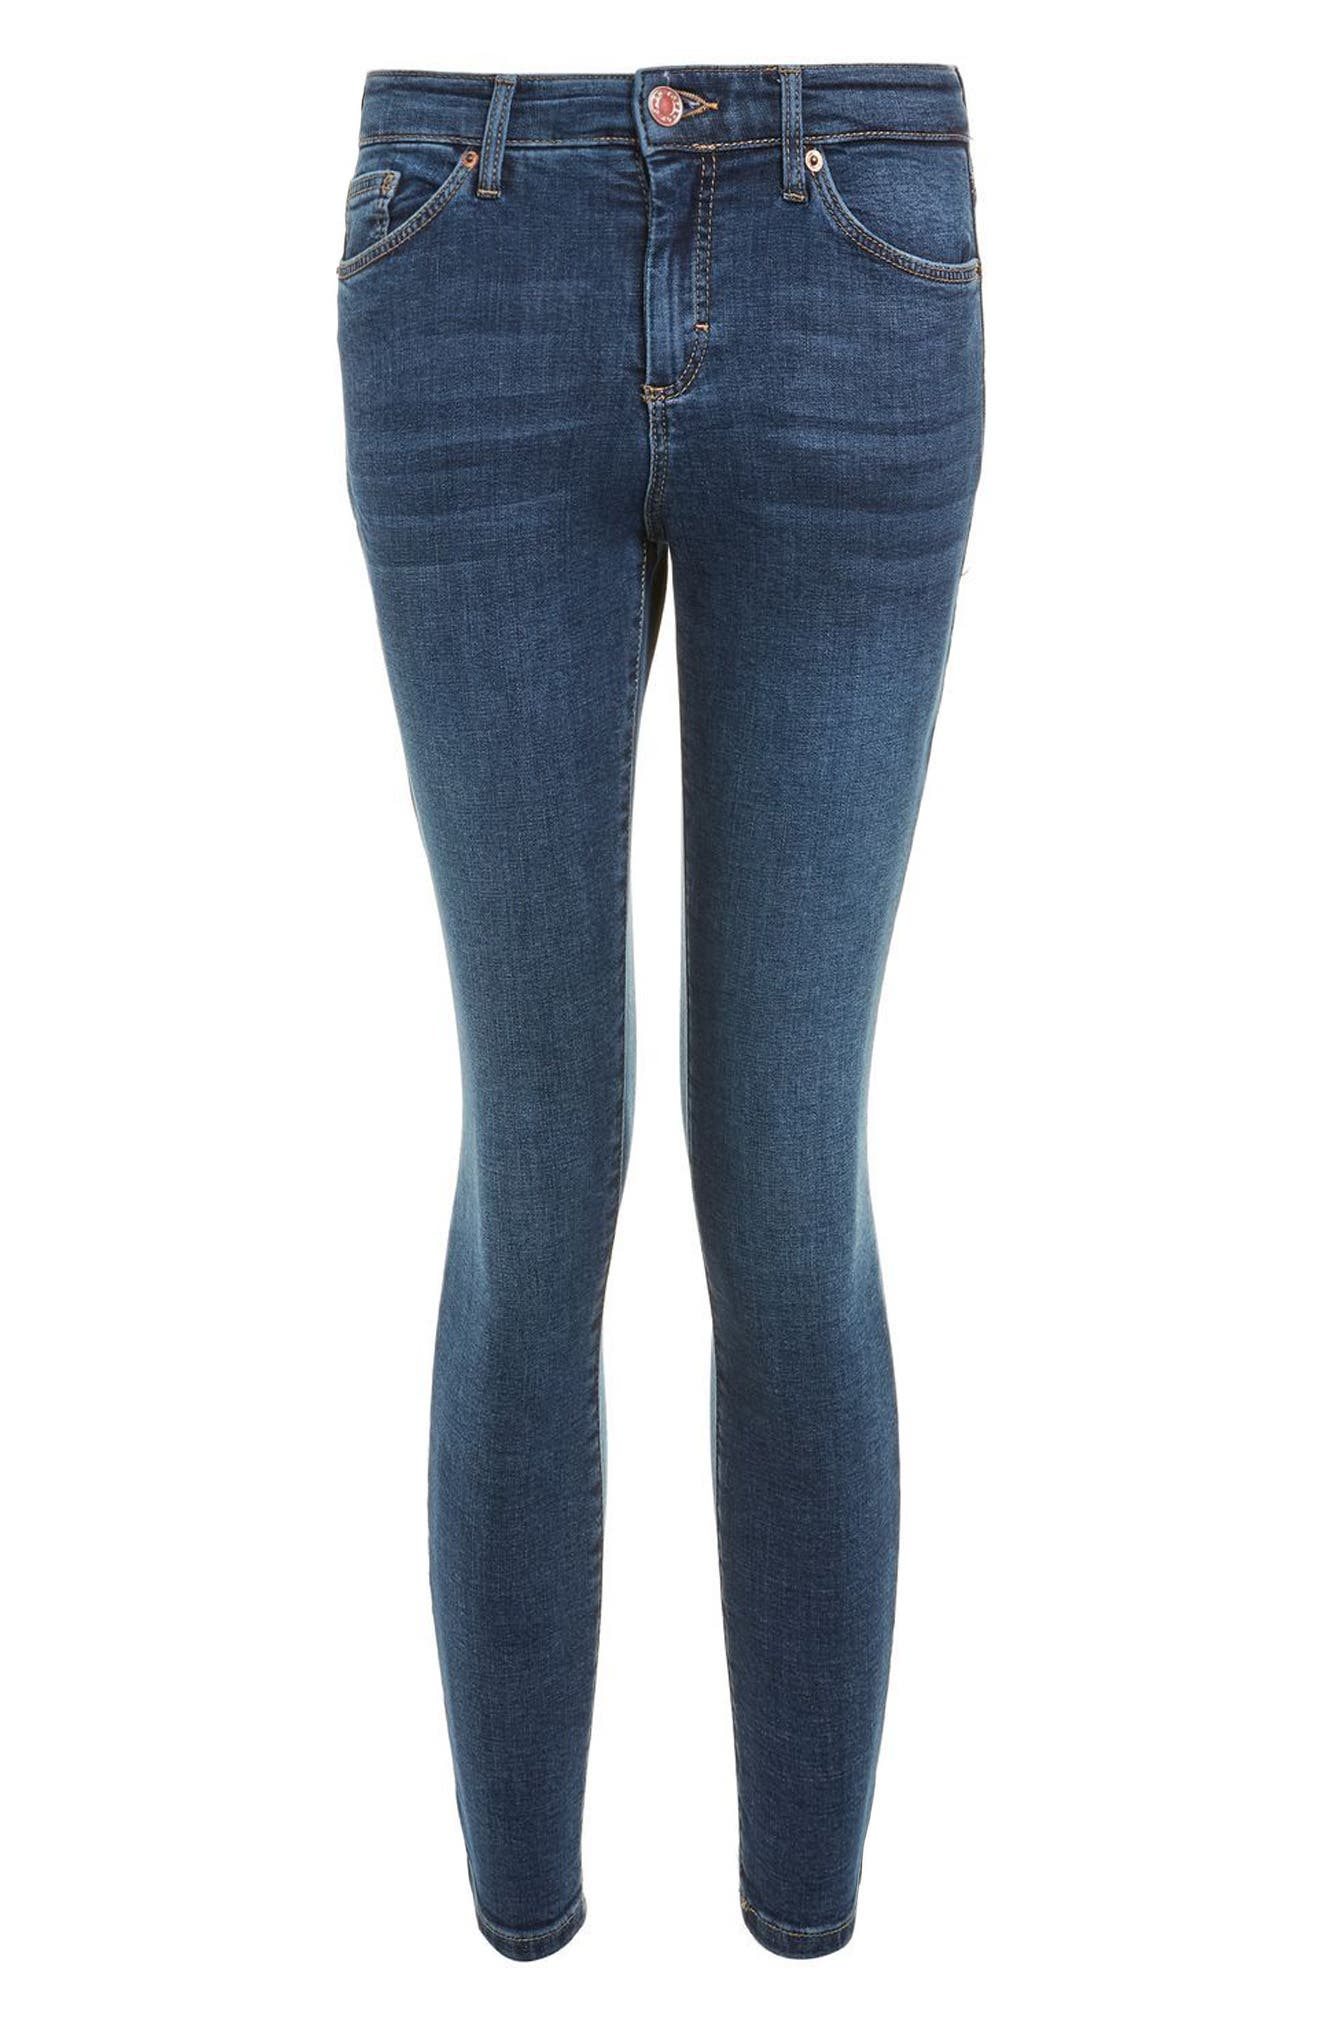 Sidney Ankle Skinny Jeans,                             Alternate thumbnail 4, color,                             Mid Denim